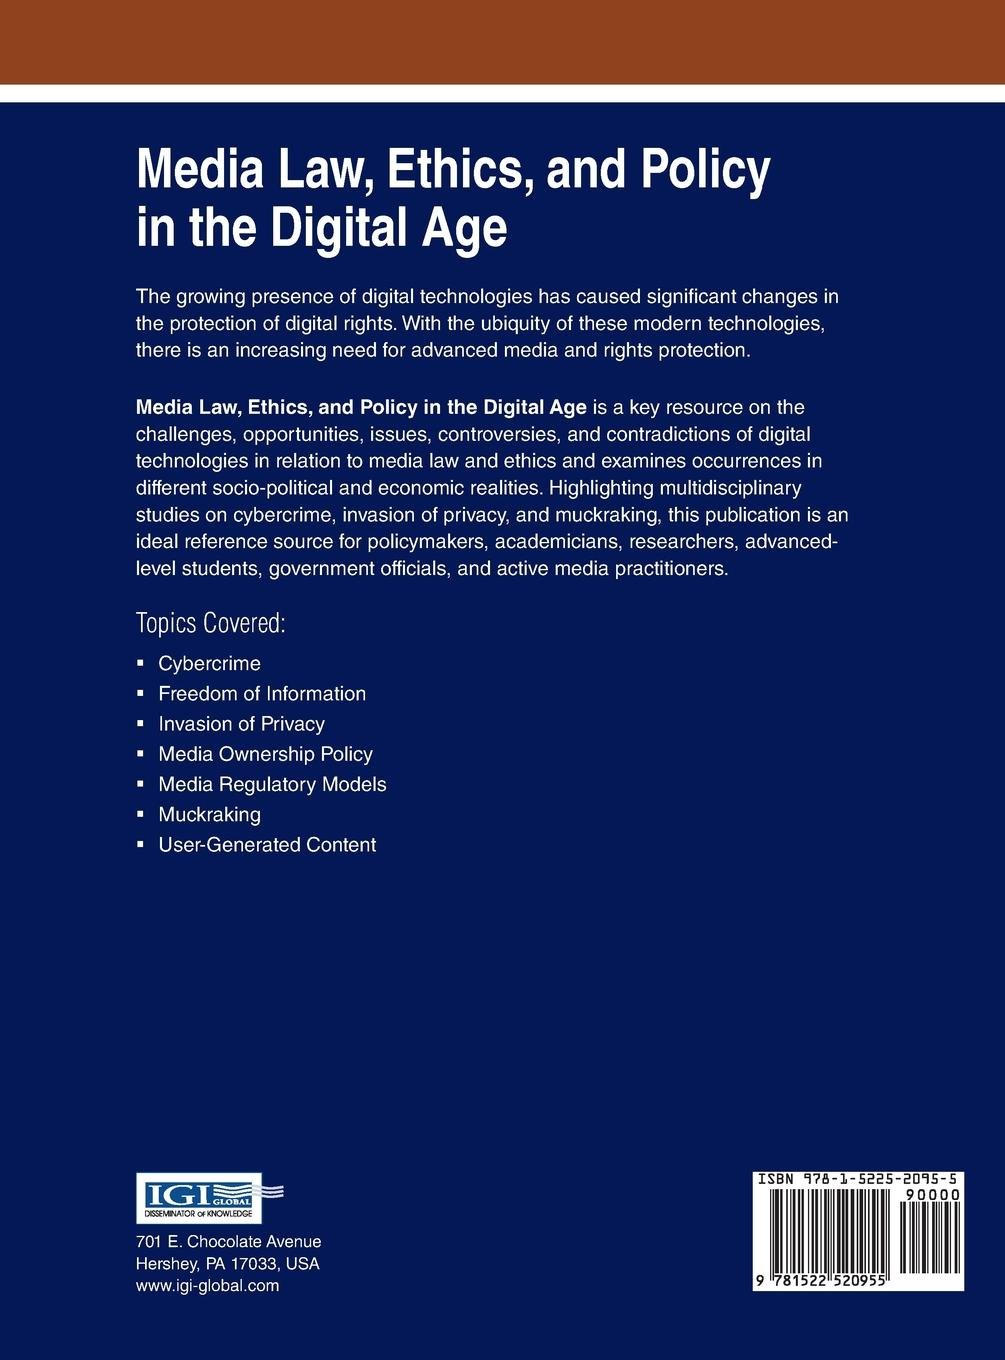 Media Law, Ethics, and Policy in the Digital Age Advances in Media